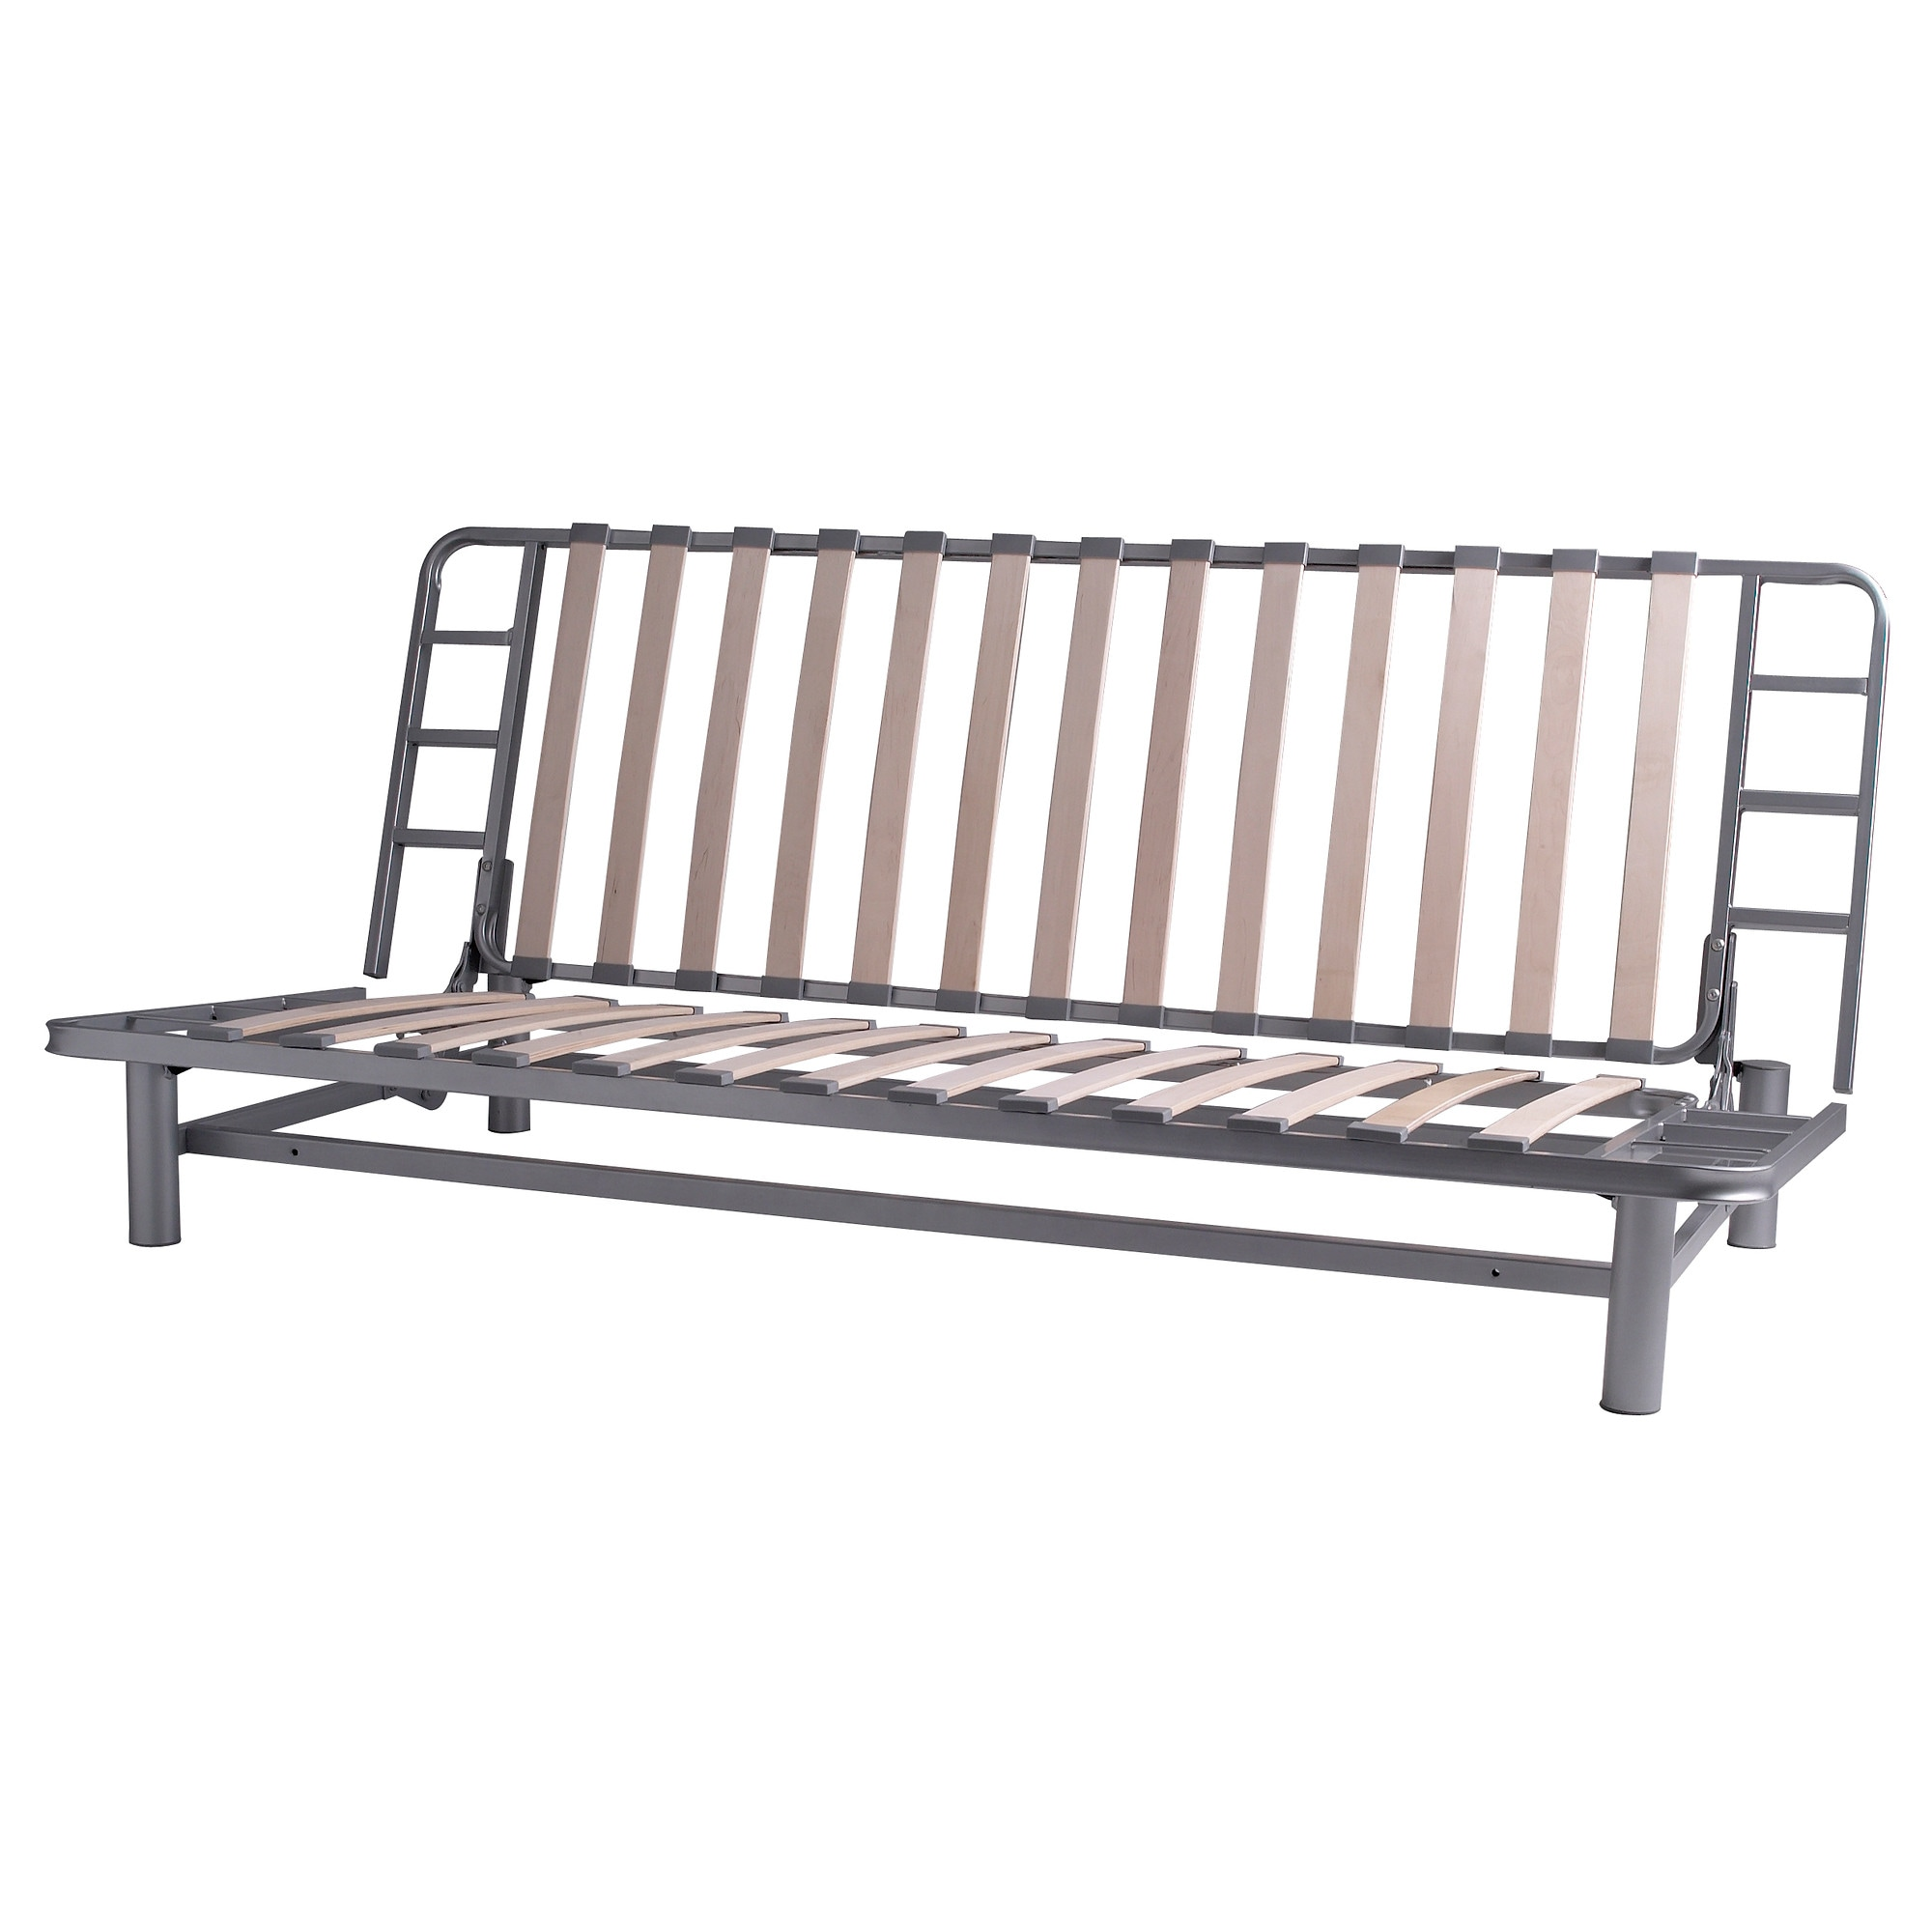 Beddinge Sleeper Sofa Frame Ikea